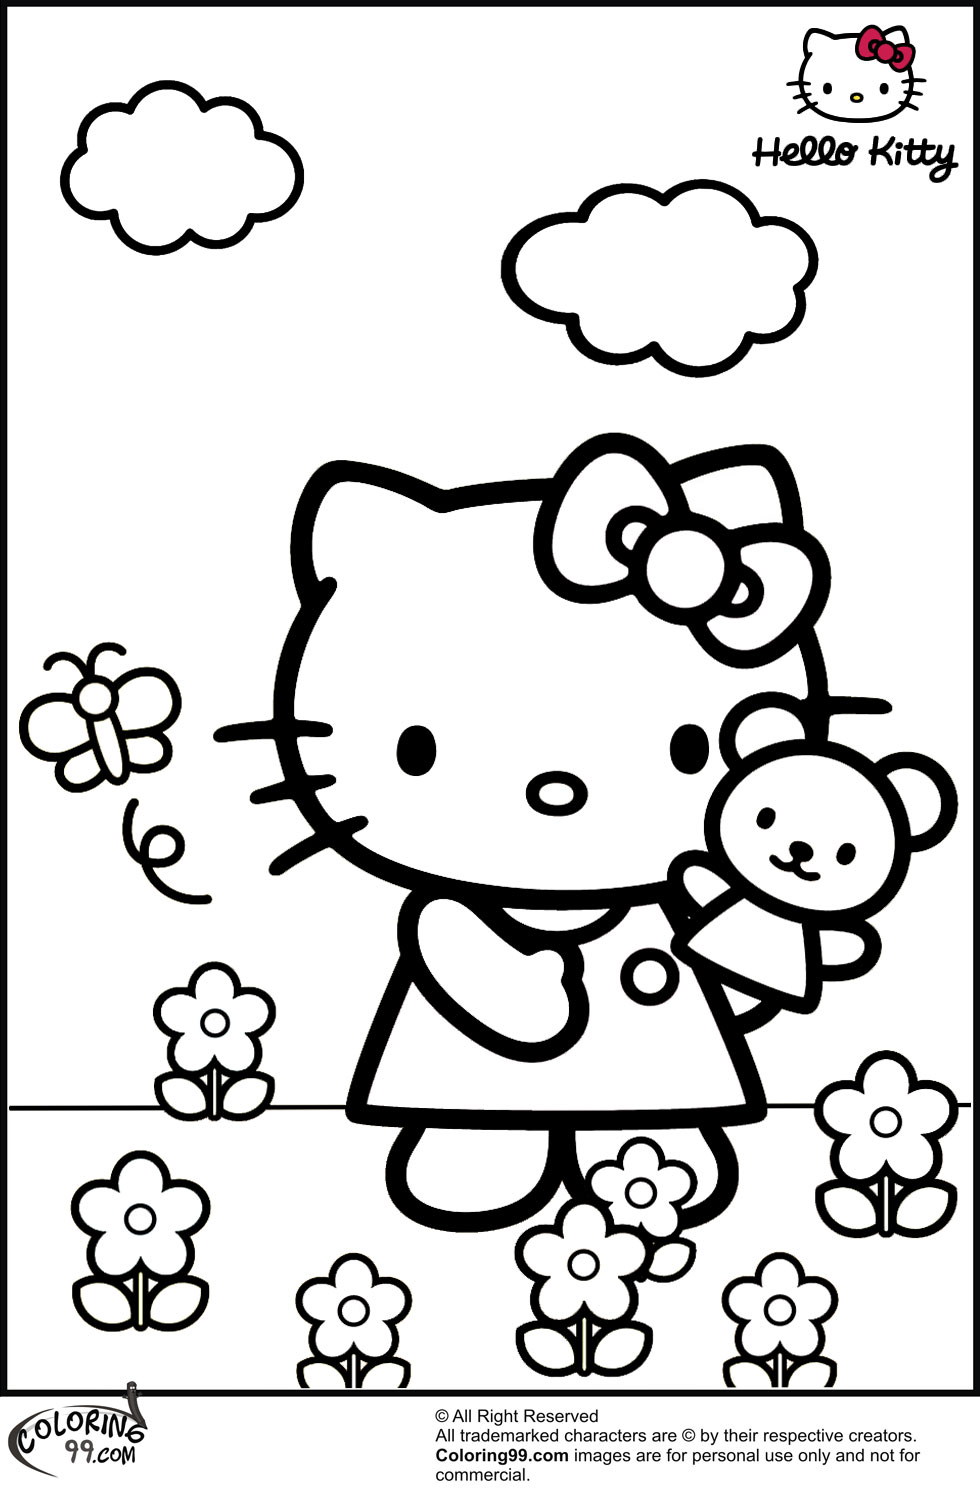 hello kitty princess coloring pages - hello kitty coloring pages team colors